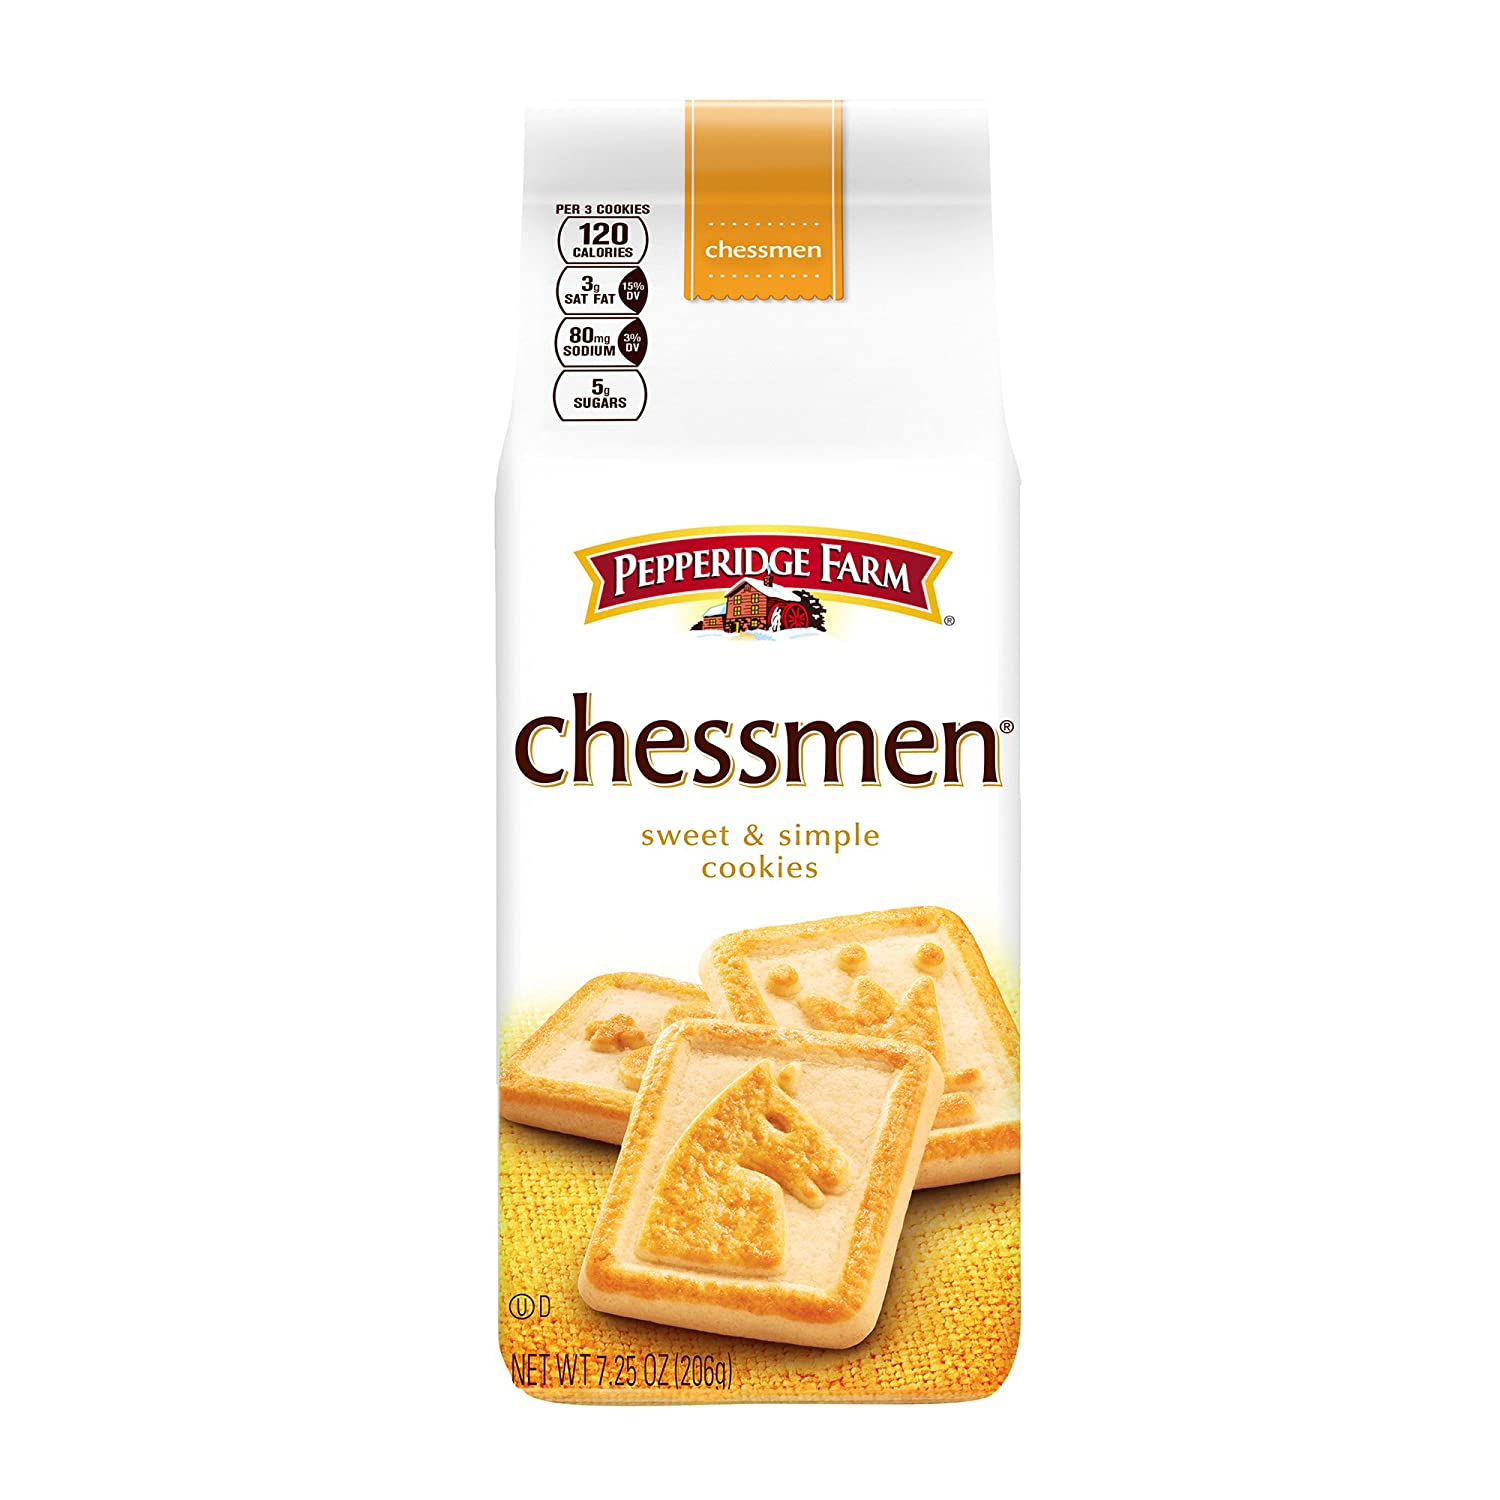 Pepperidge Farm Chessmen Cookies 7 25 Ounce Pack Of 6 Amazon Com Grocery Gourmet Food